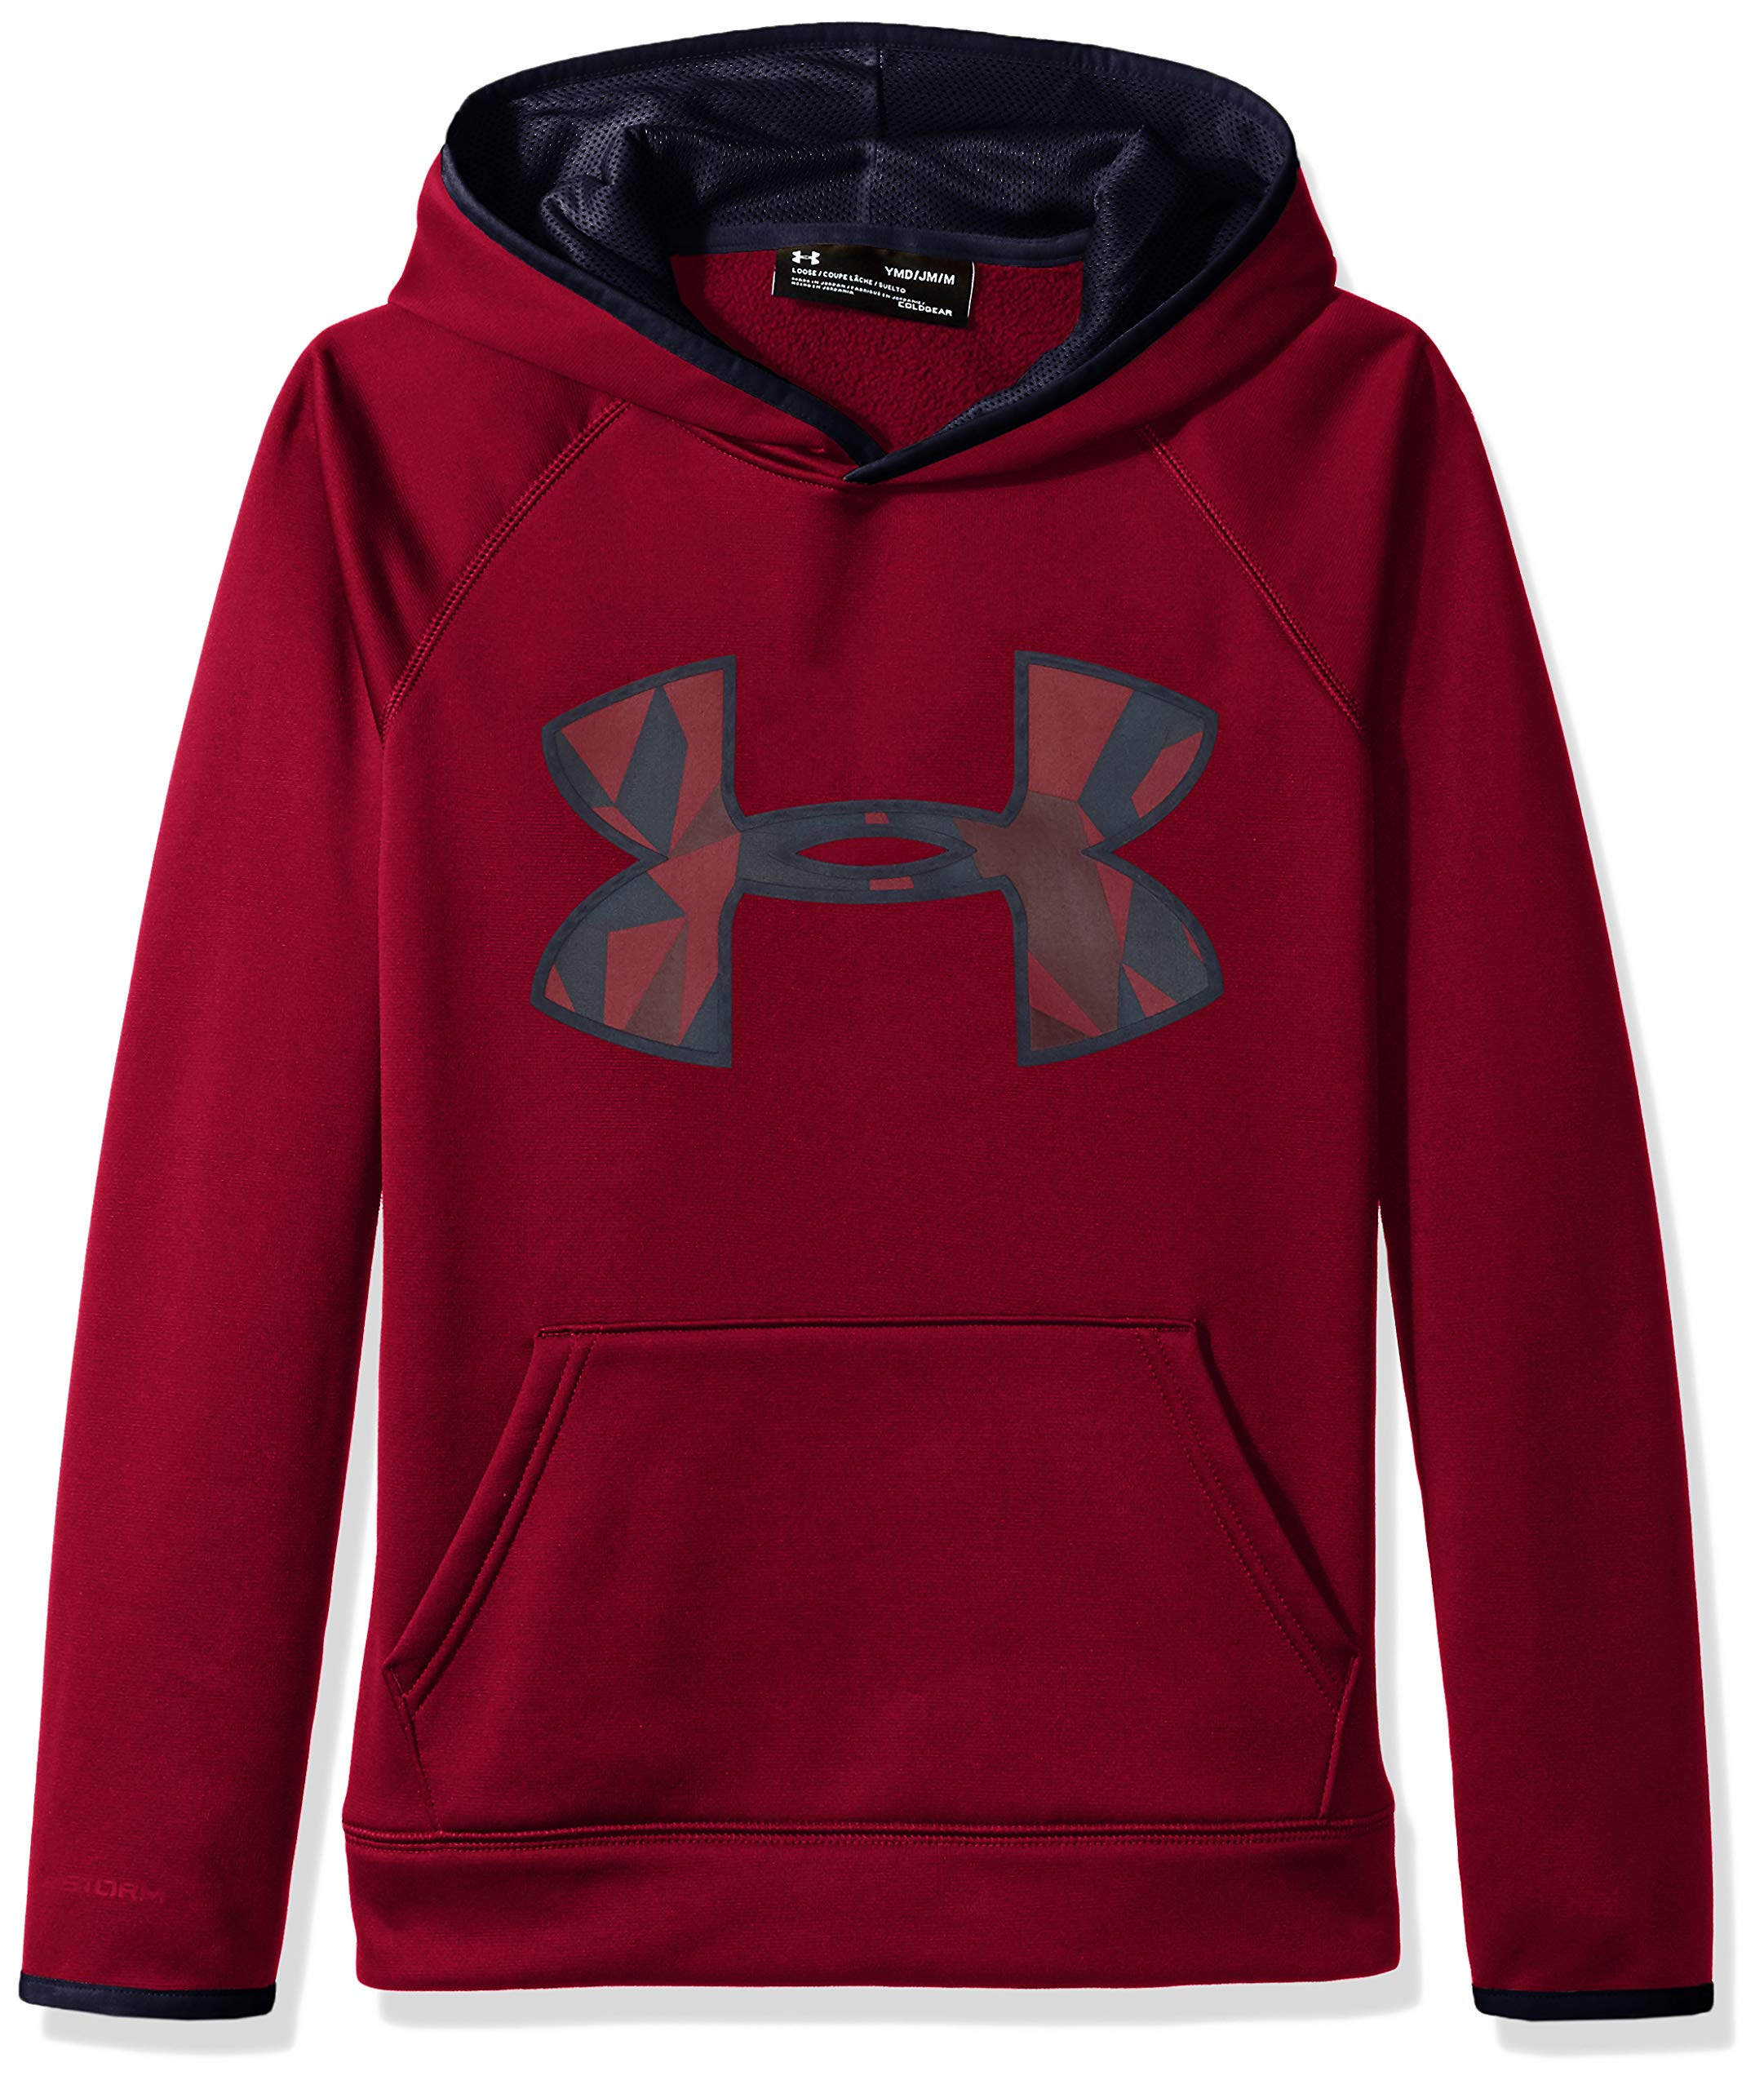 Under Armour Boys' Armour Fleece Big Logo Hoodie,Black Currant (923)/Black Currant, Youth X-Small